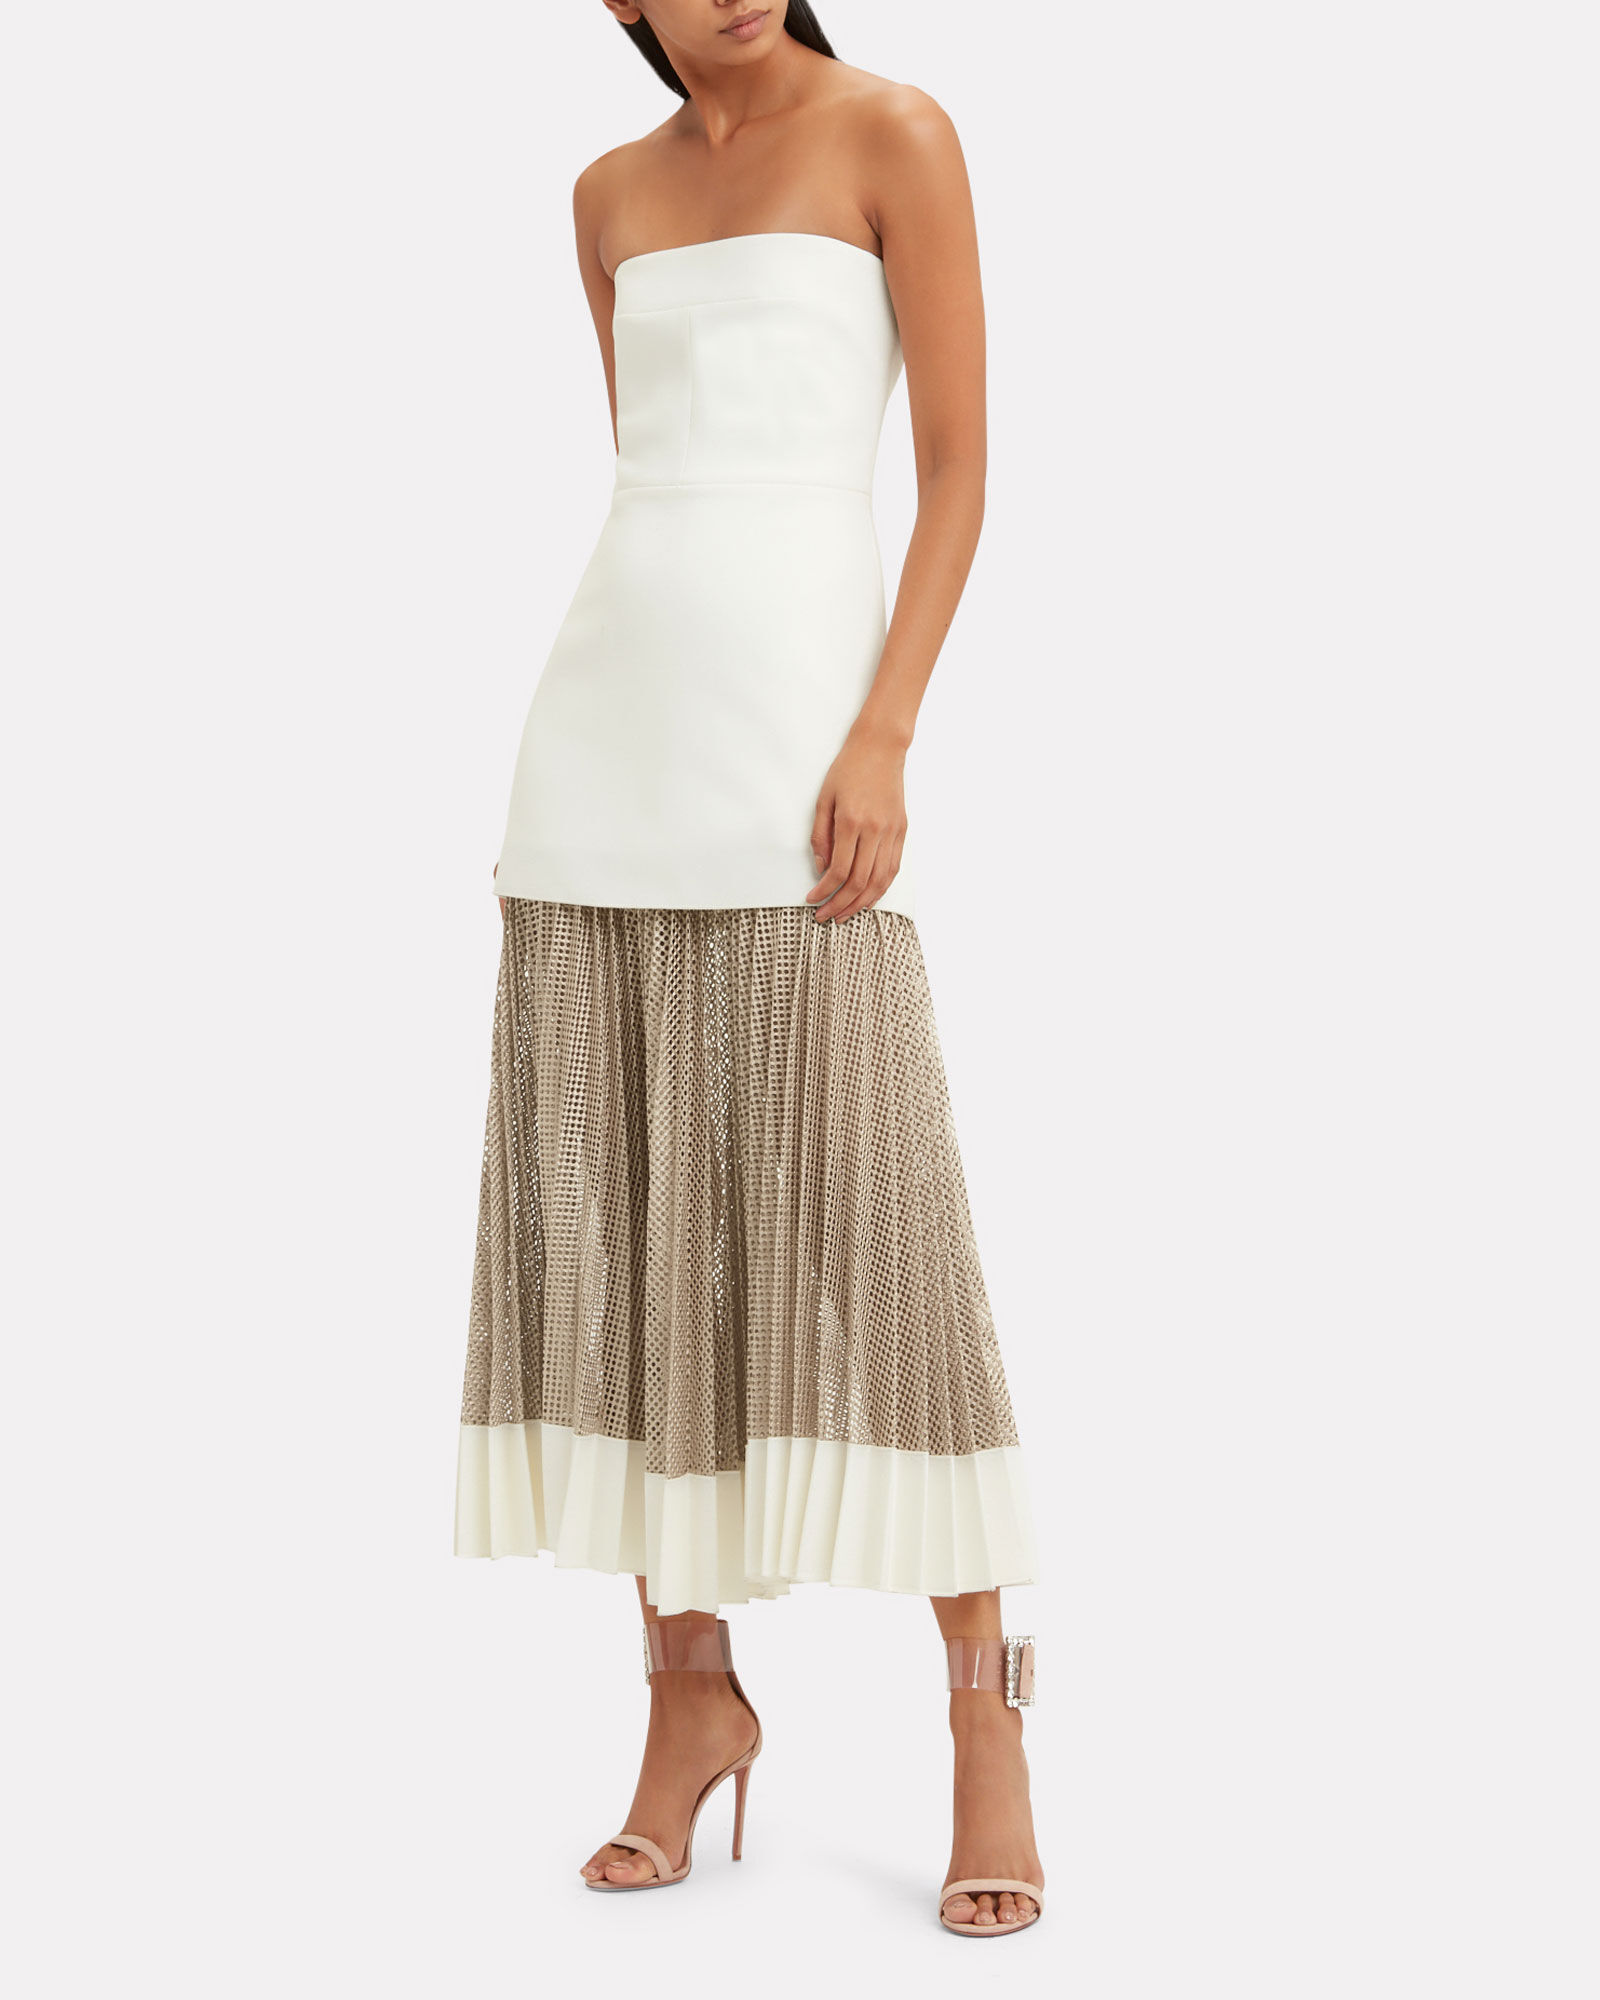 Strapless Bonded Crepe Net Pleated Dress, IVORY/BEIGE, hi-res